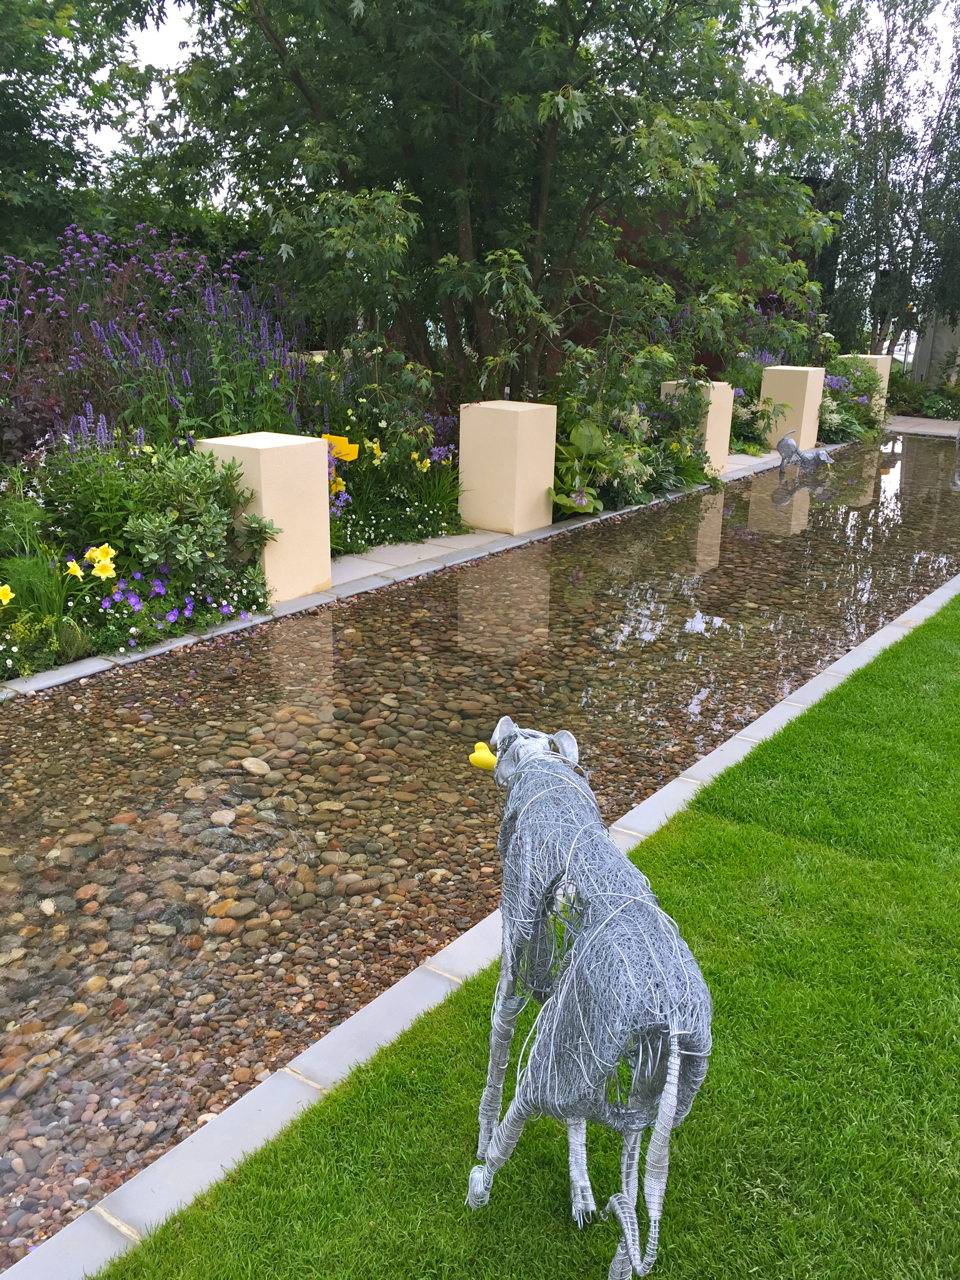 Dog day afternoon at Hampton Court Palace Flower Show